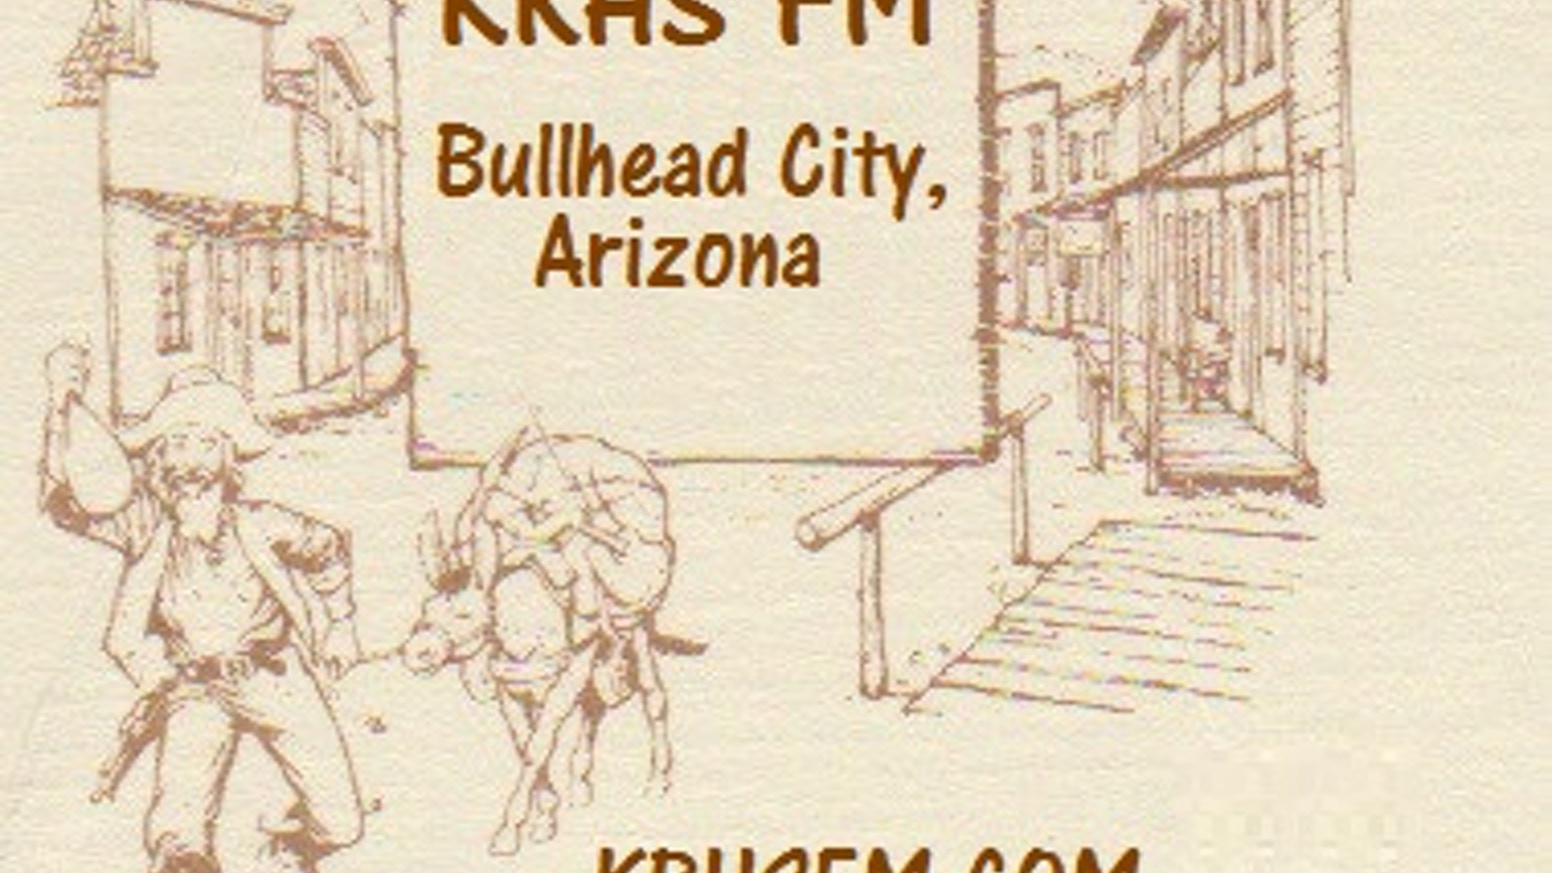 "KRHS FM Bullhead City, Arizona, ""KRHSFM.COM""  a real radio station that existed long ago.... Listener funded for (2016)!"